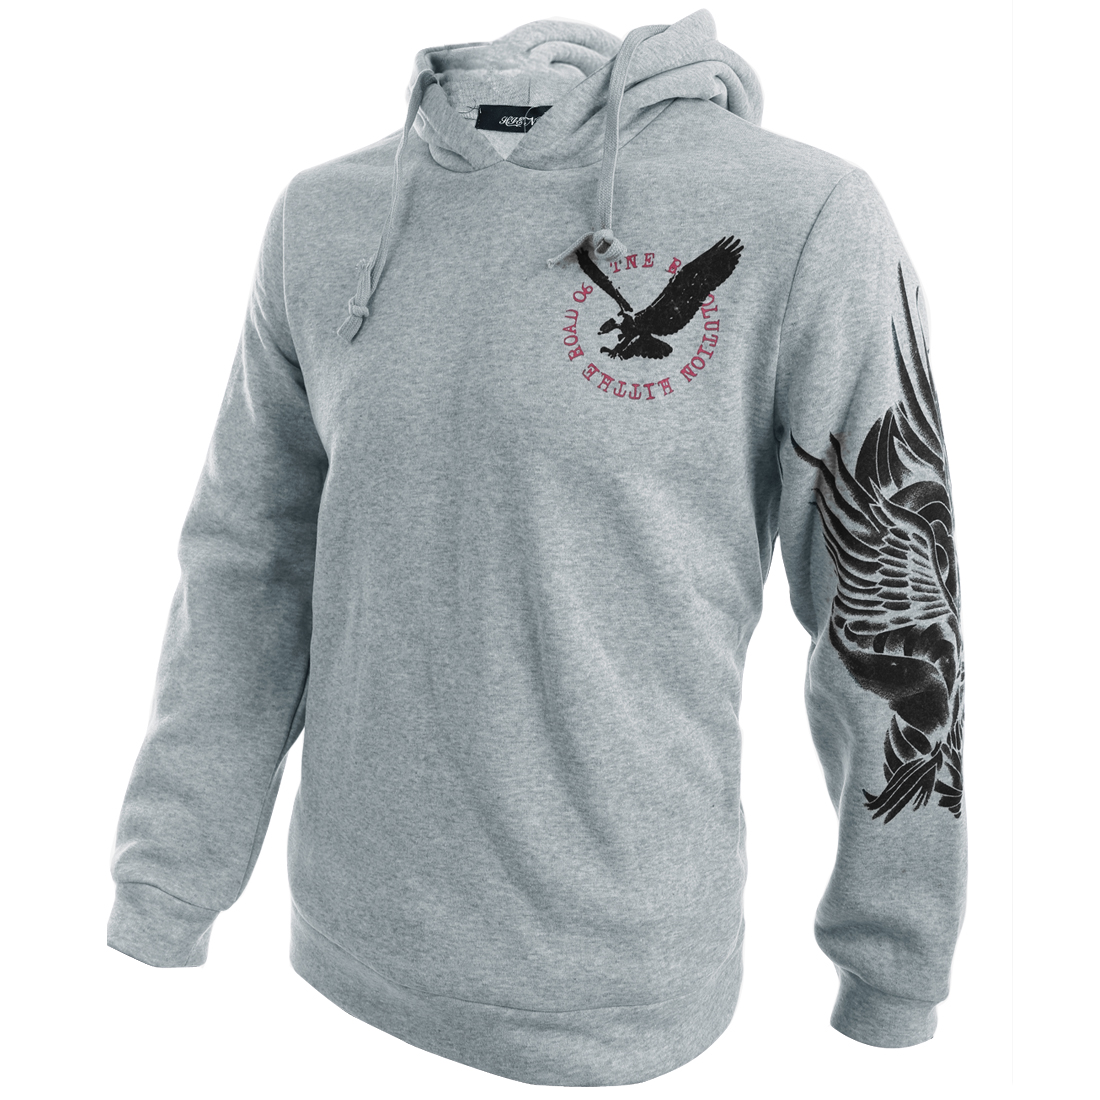 Man's Eagle Letters Printed Light Gray Hoodie M